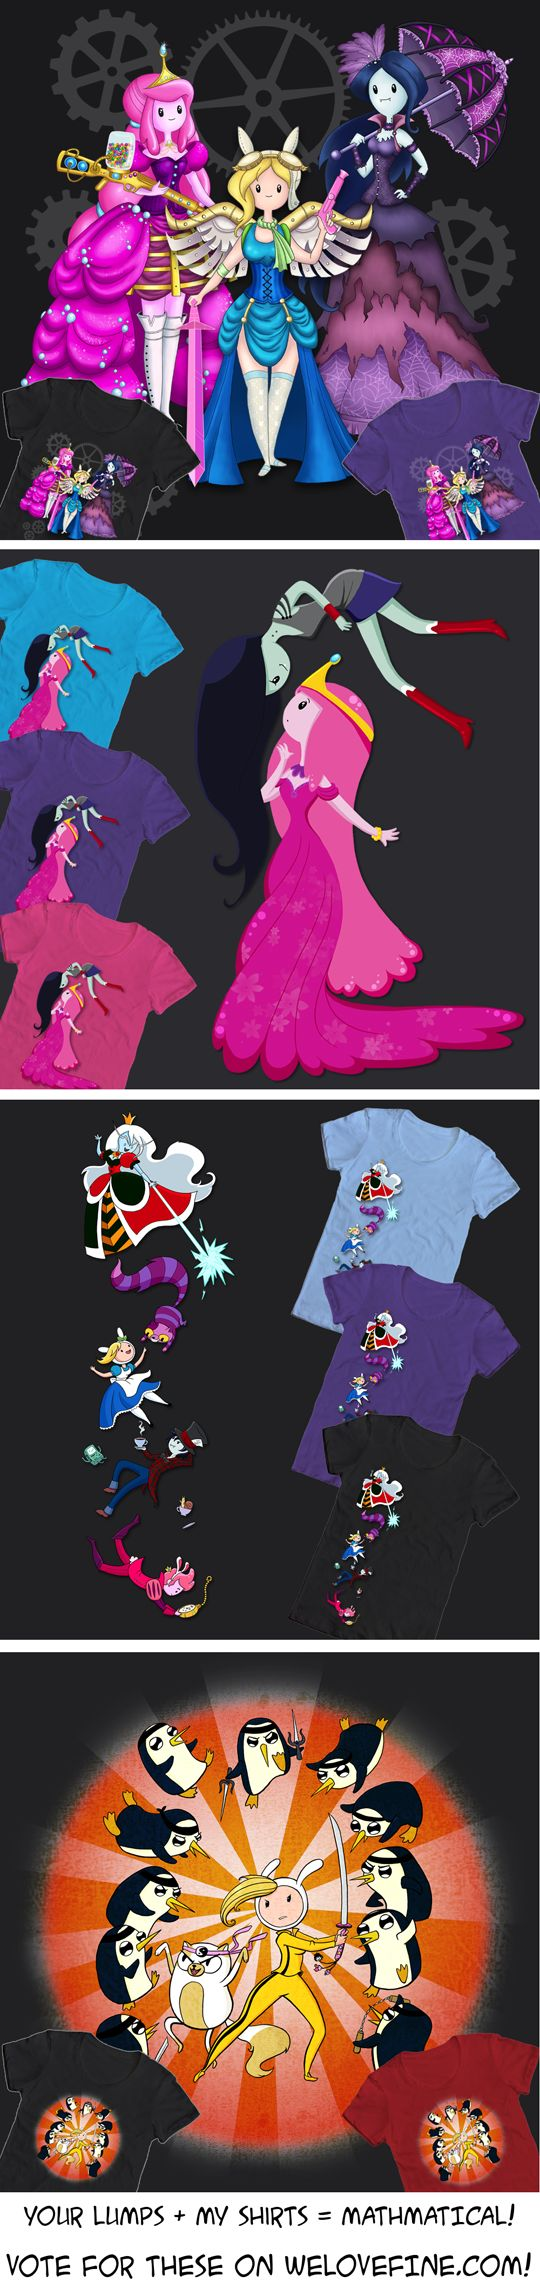 WeLoveFine Adventure Time T-Shirt Contest! by NikkiWardArt.deviantart.com on @DeviantArt